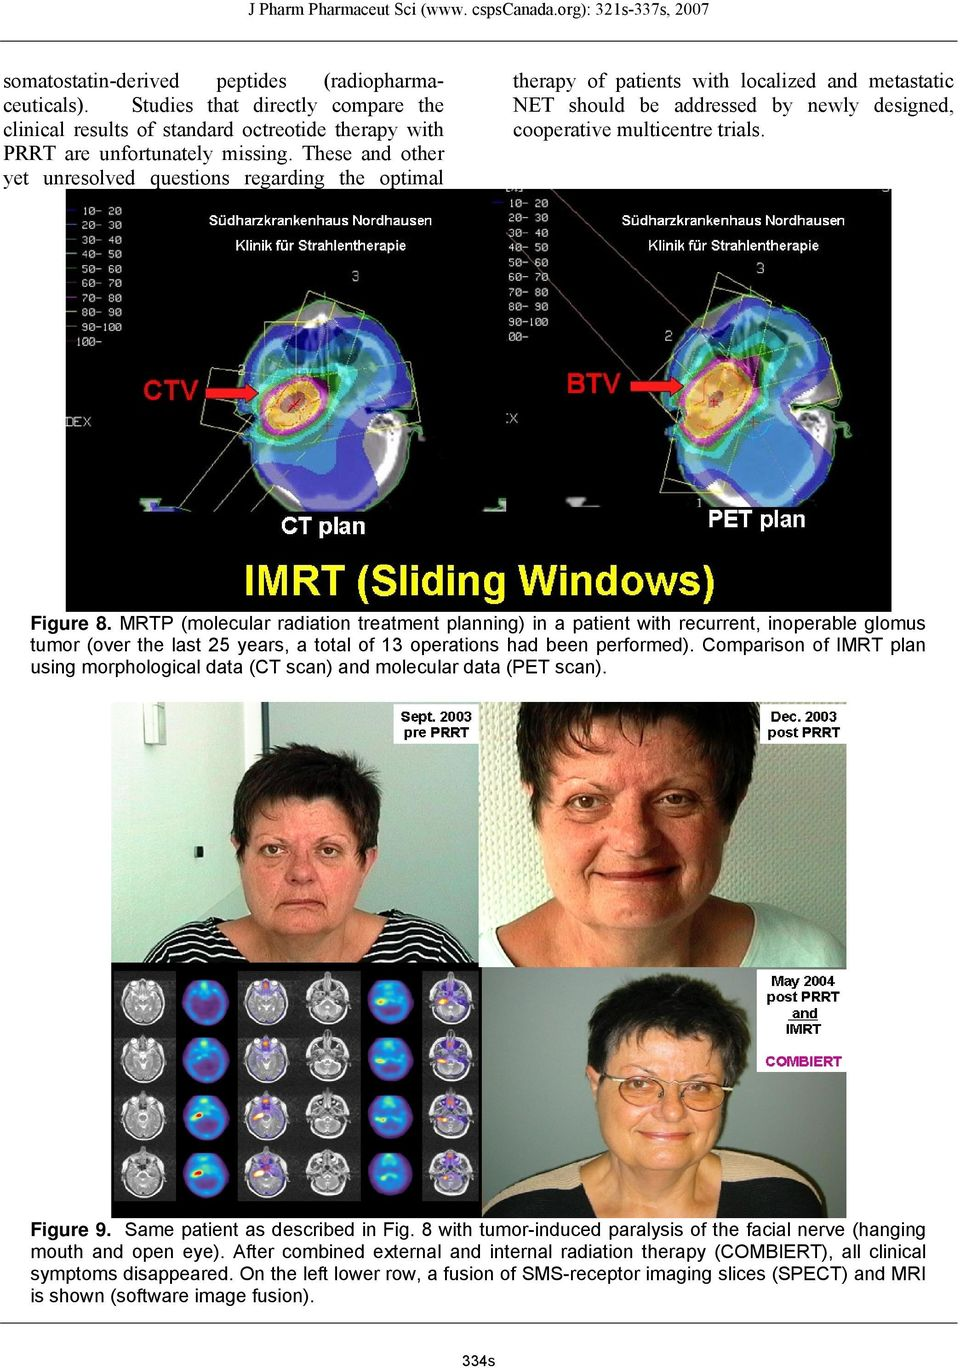 MRTP (molecular radiation treatment planning) in a patient with recurrent, inoperable glomus tumor (over the last 25 years, a total of 13 operations had been performed).